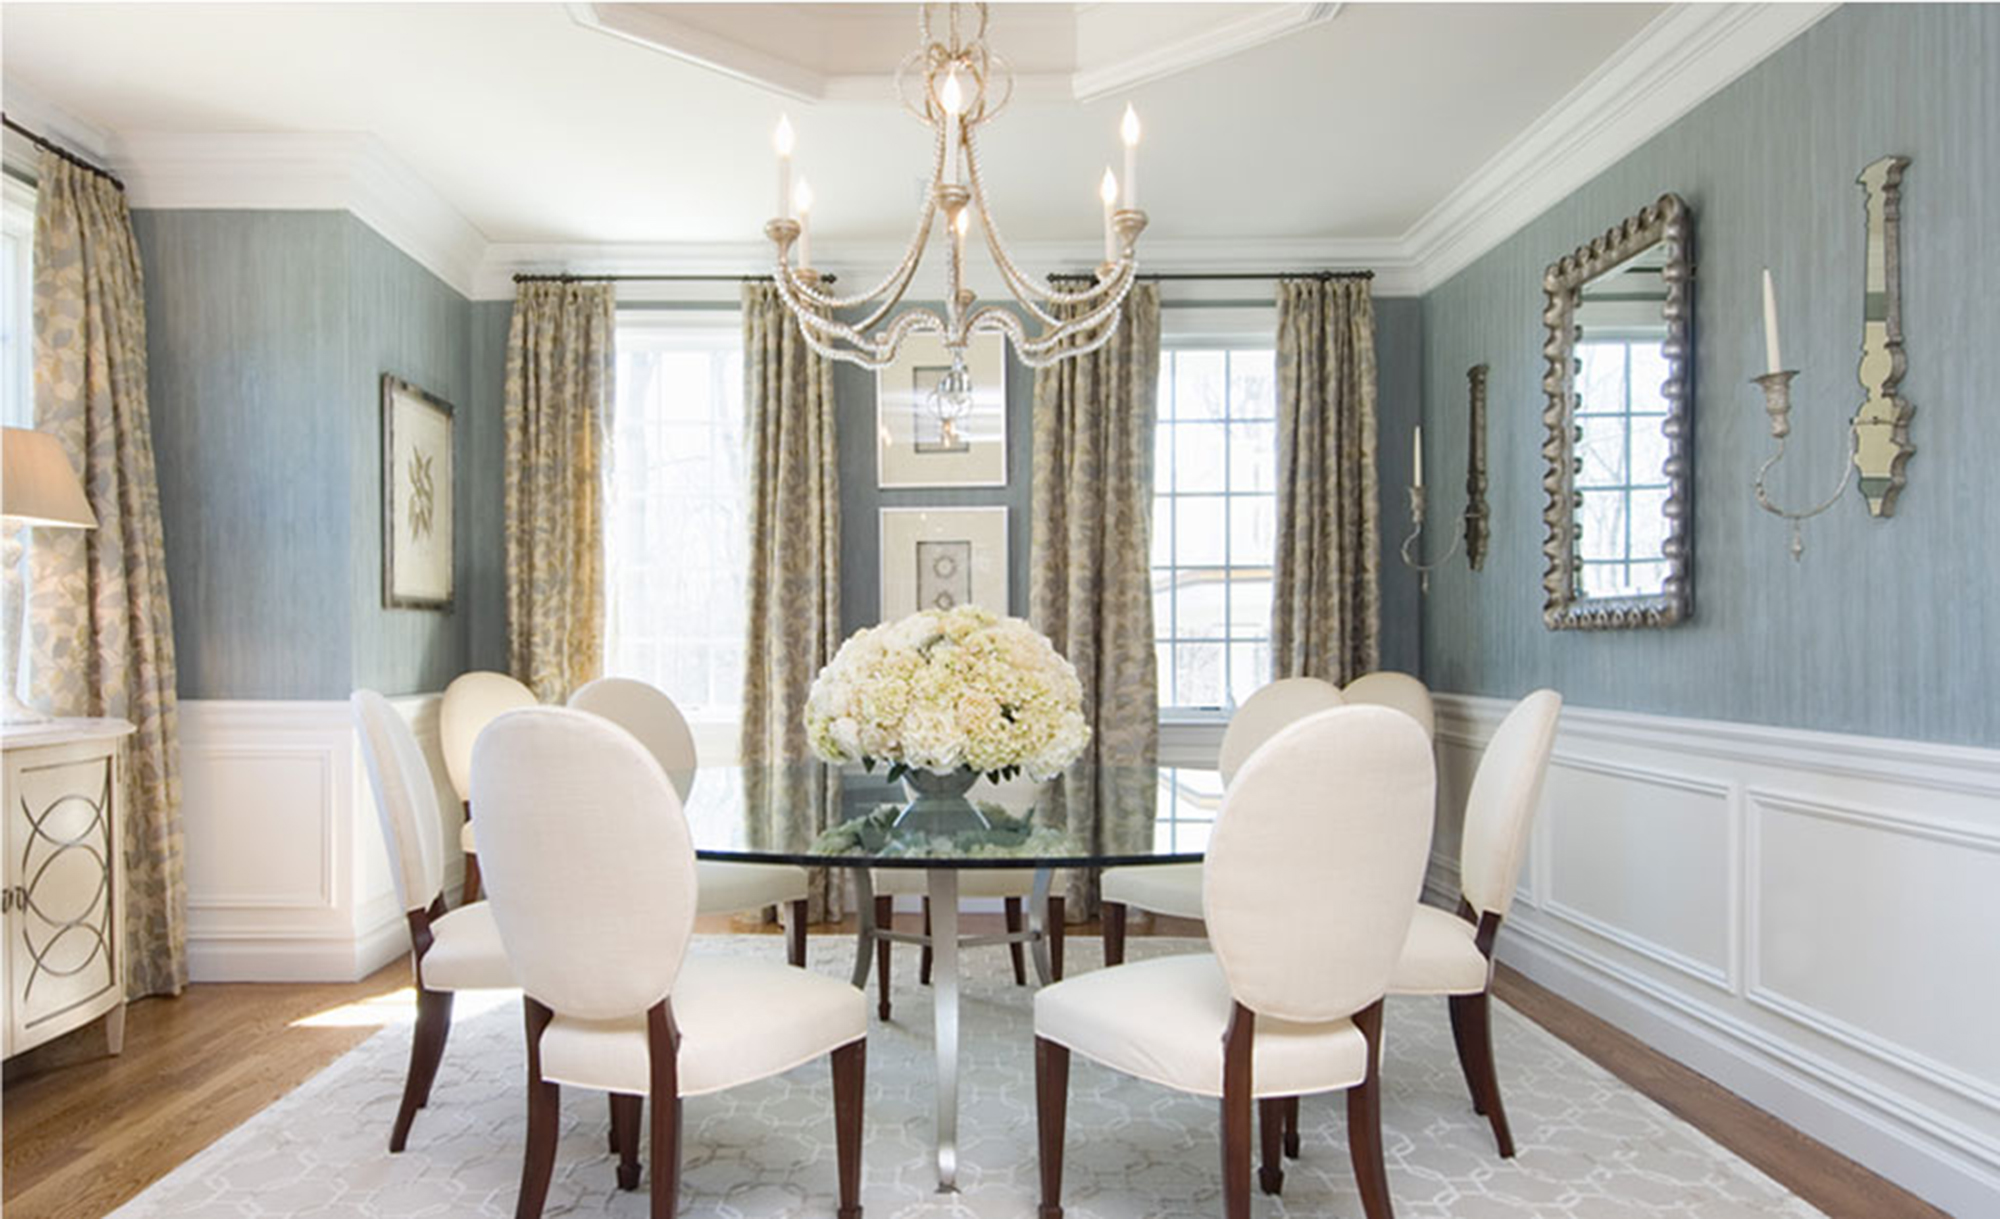 Outstanding How Many People Can Fit At My Dining Room Table Kathy Kuo Interior Design Ideas Truasarkarijobsexamcom